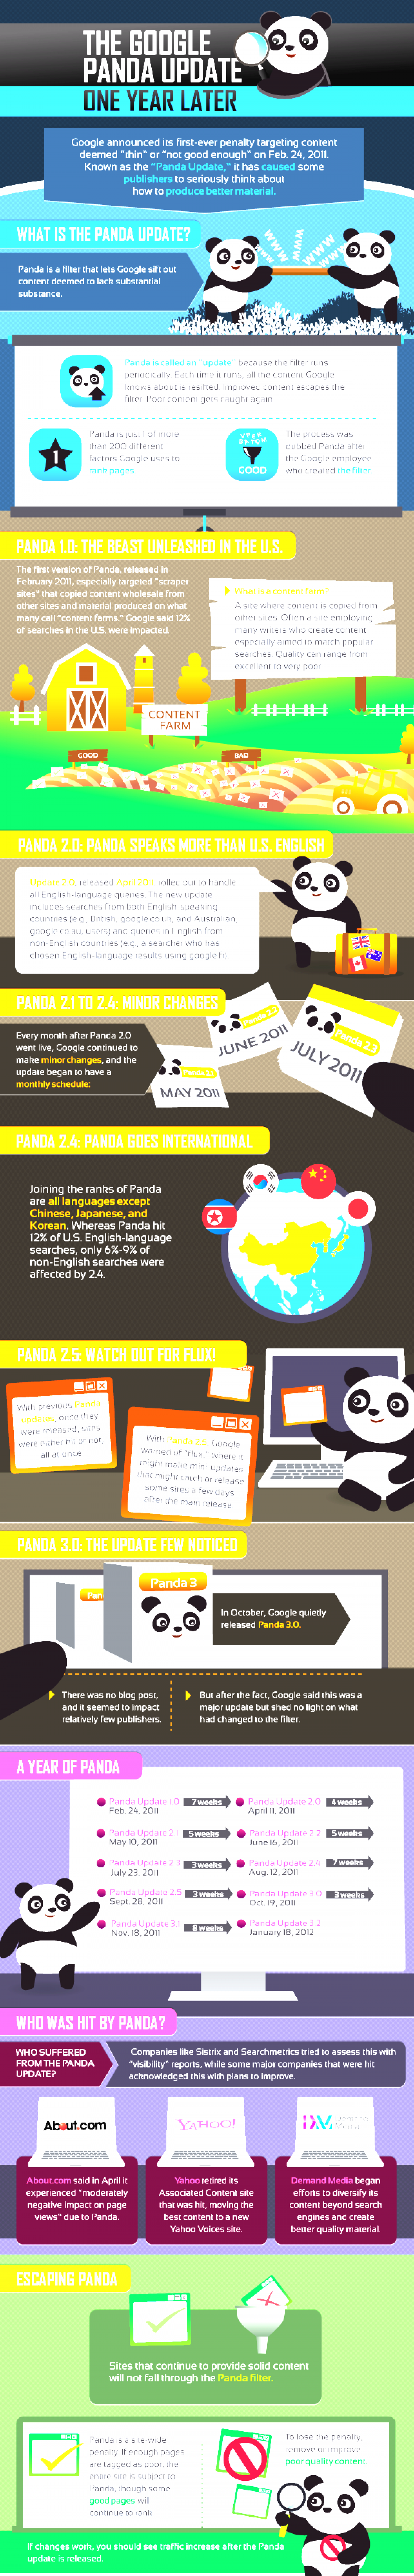 Do You want To Know About What Is Google Panda Update By EBriks Infotech Infographic